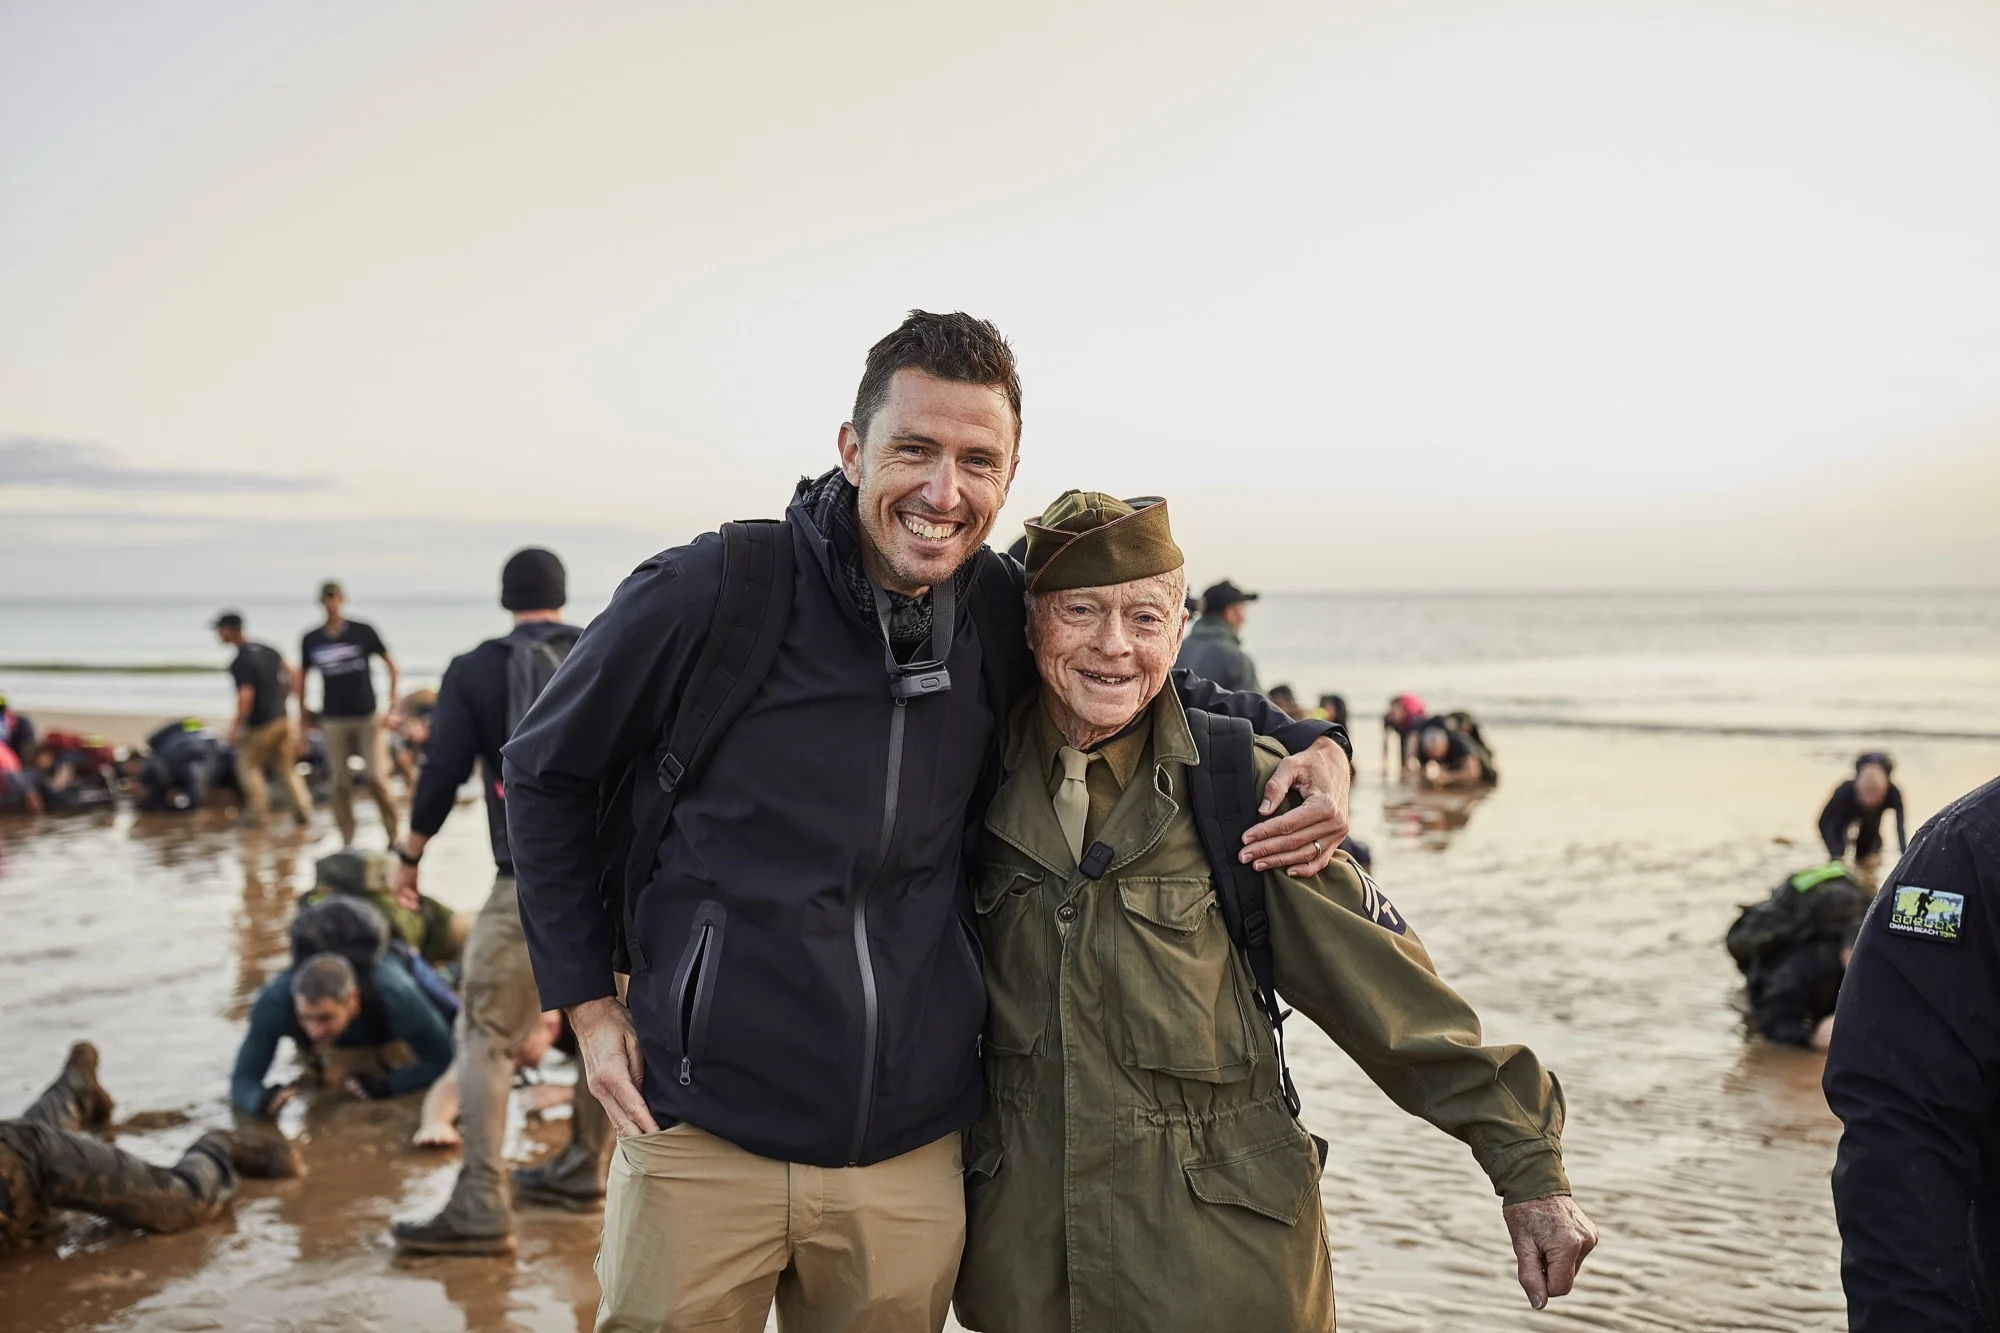 GORUCK founder with WWI vet at Omaha Beach for 75th anniversary